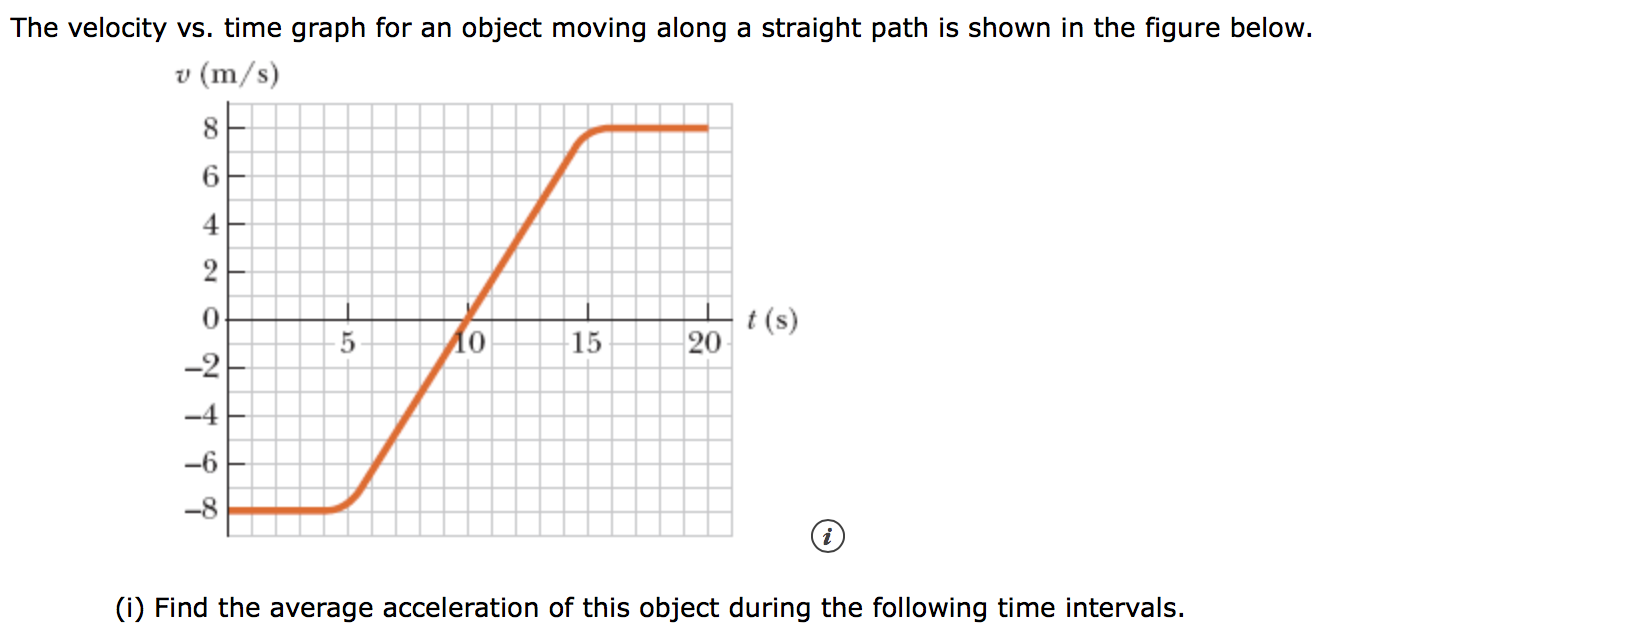 The velocity vs. time graph for an object moving along a straight path is shown in the figure below. v (m/s) 8 6 2 0 t(s) 20 Ао 15 -2 -4 (i) Find the average acceleration of this object during the following time intervals.